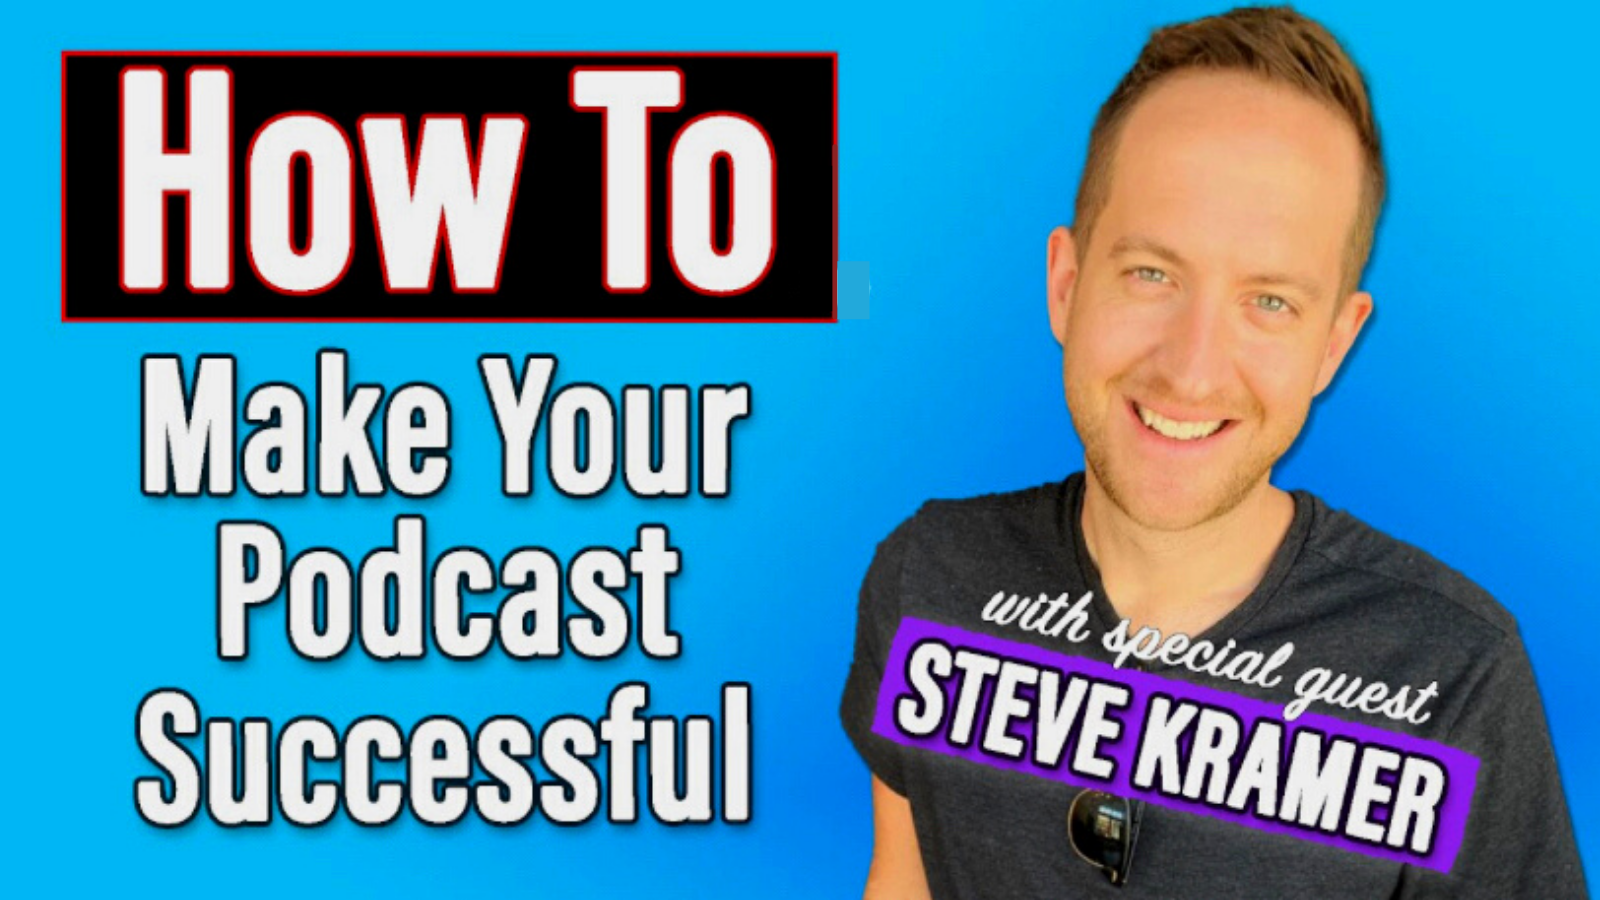 How To Make Your Podcast Successful